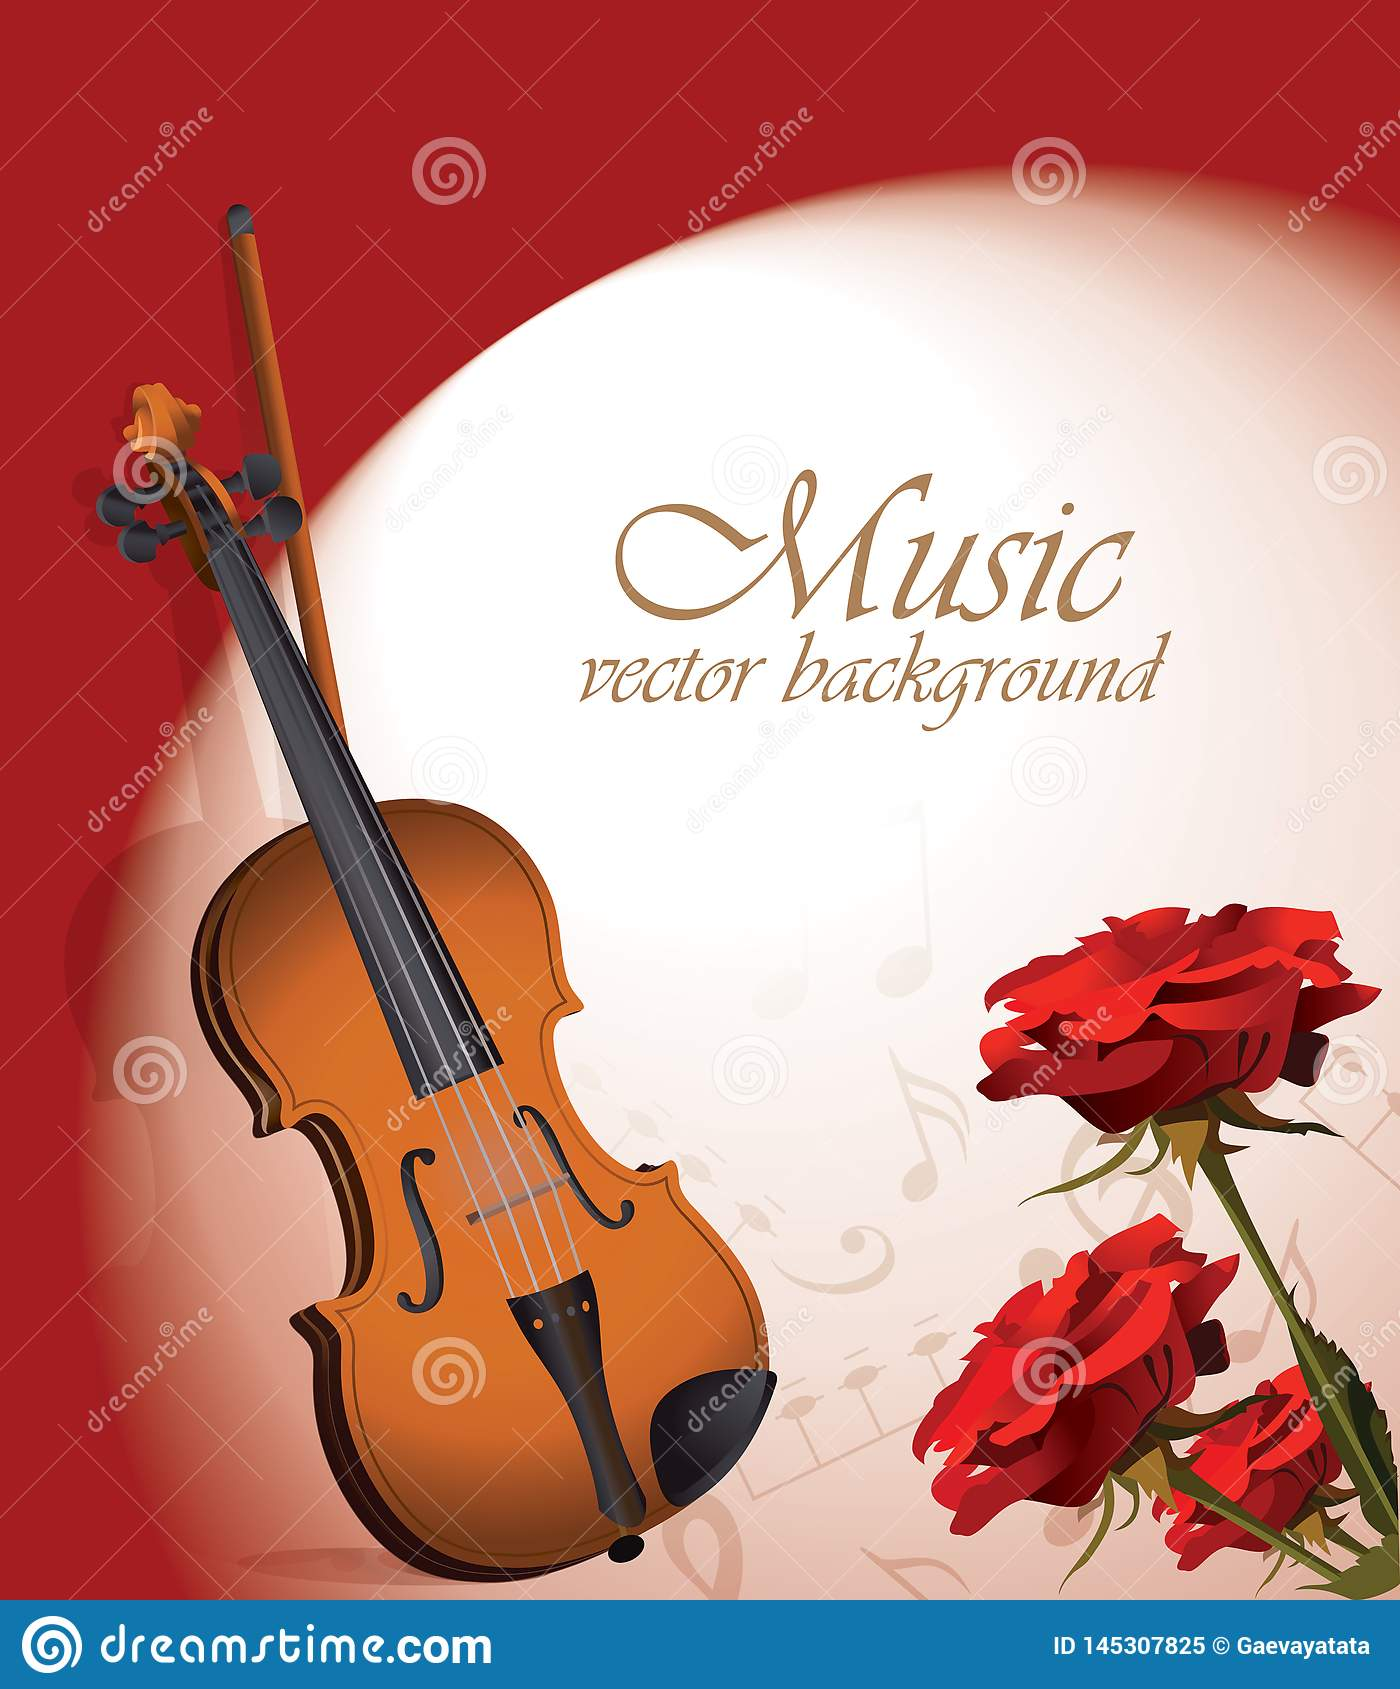 Violin and red roses